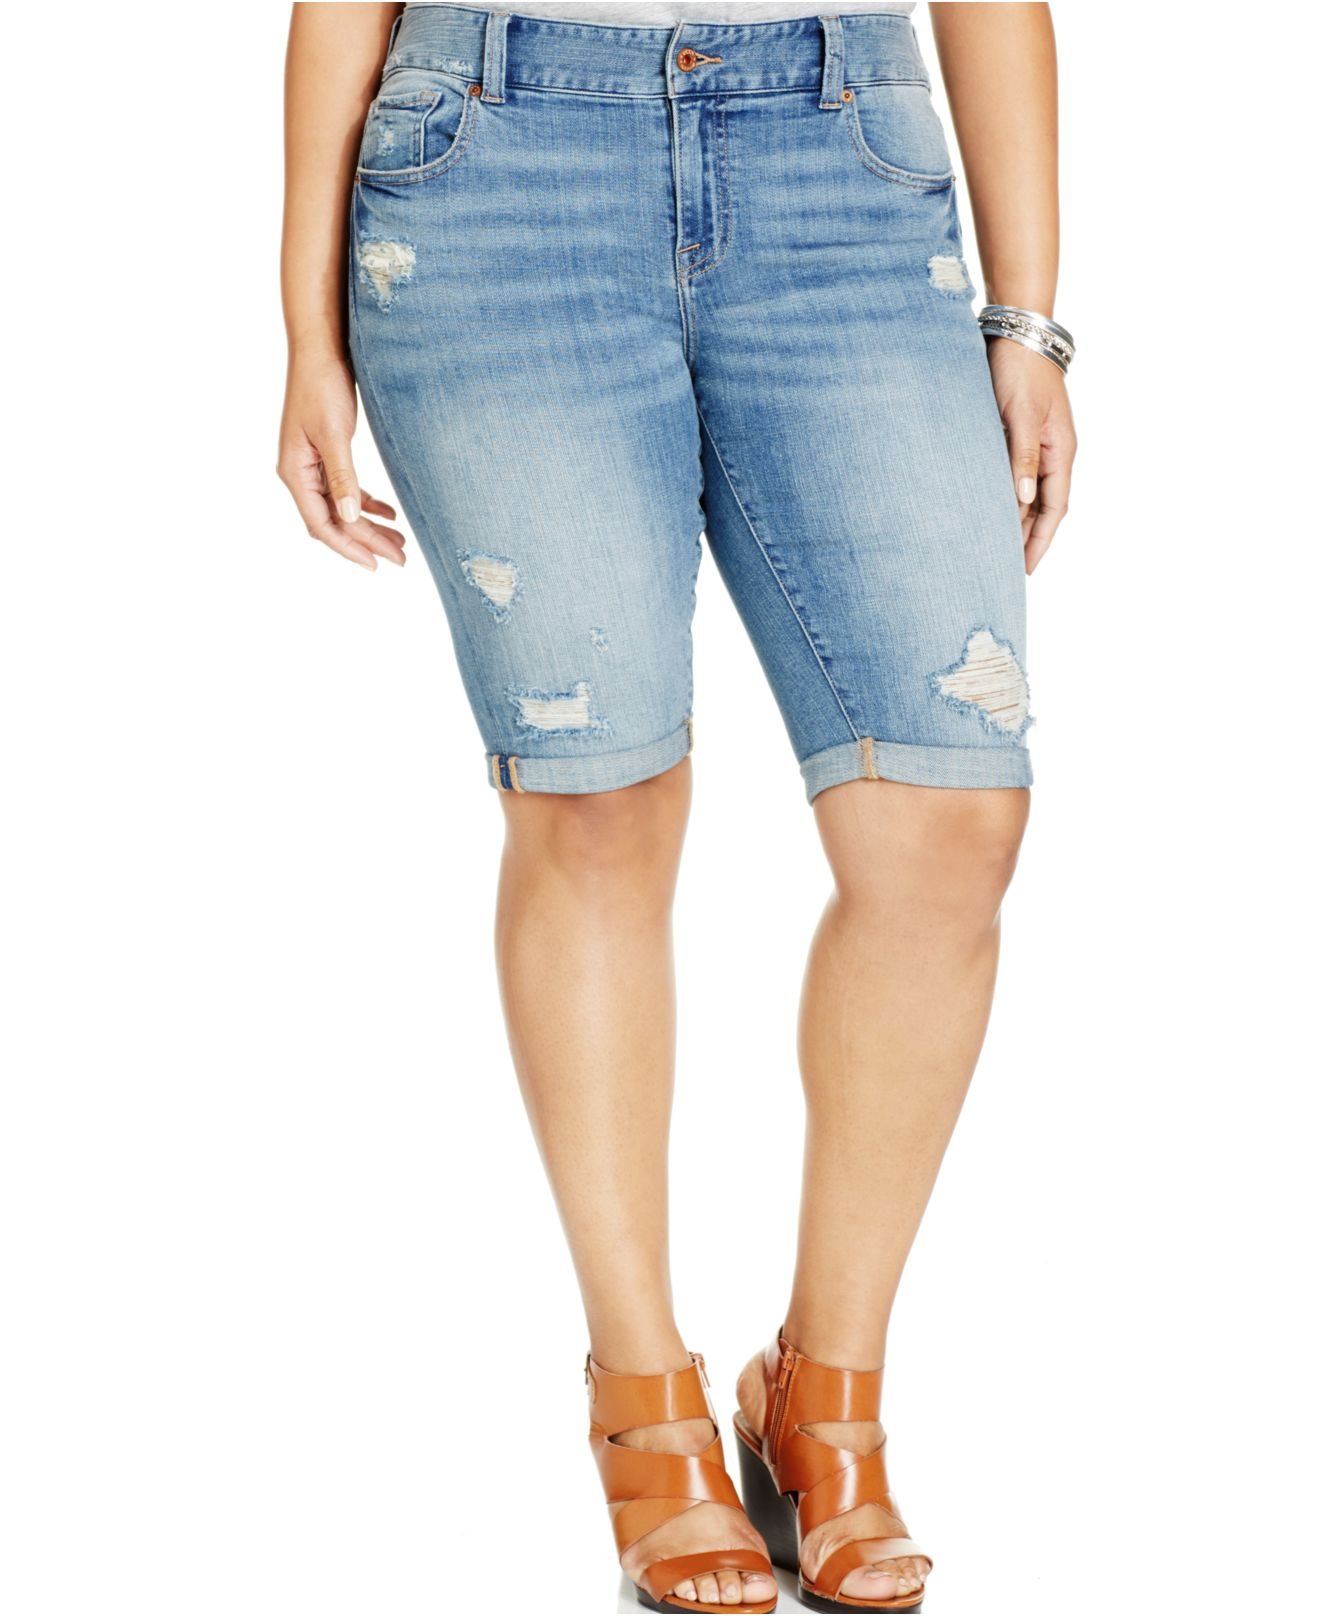 lucky brand lucky brand plus size distressed denim bermuda shorts